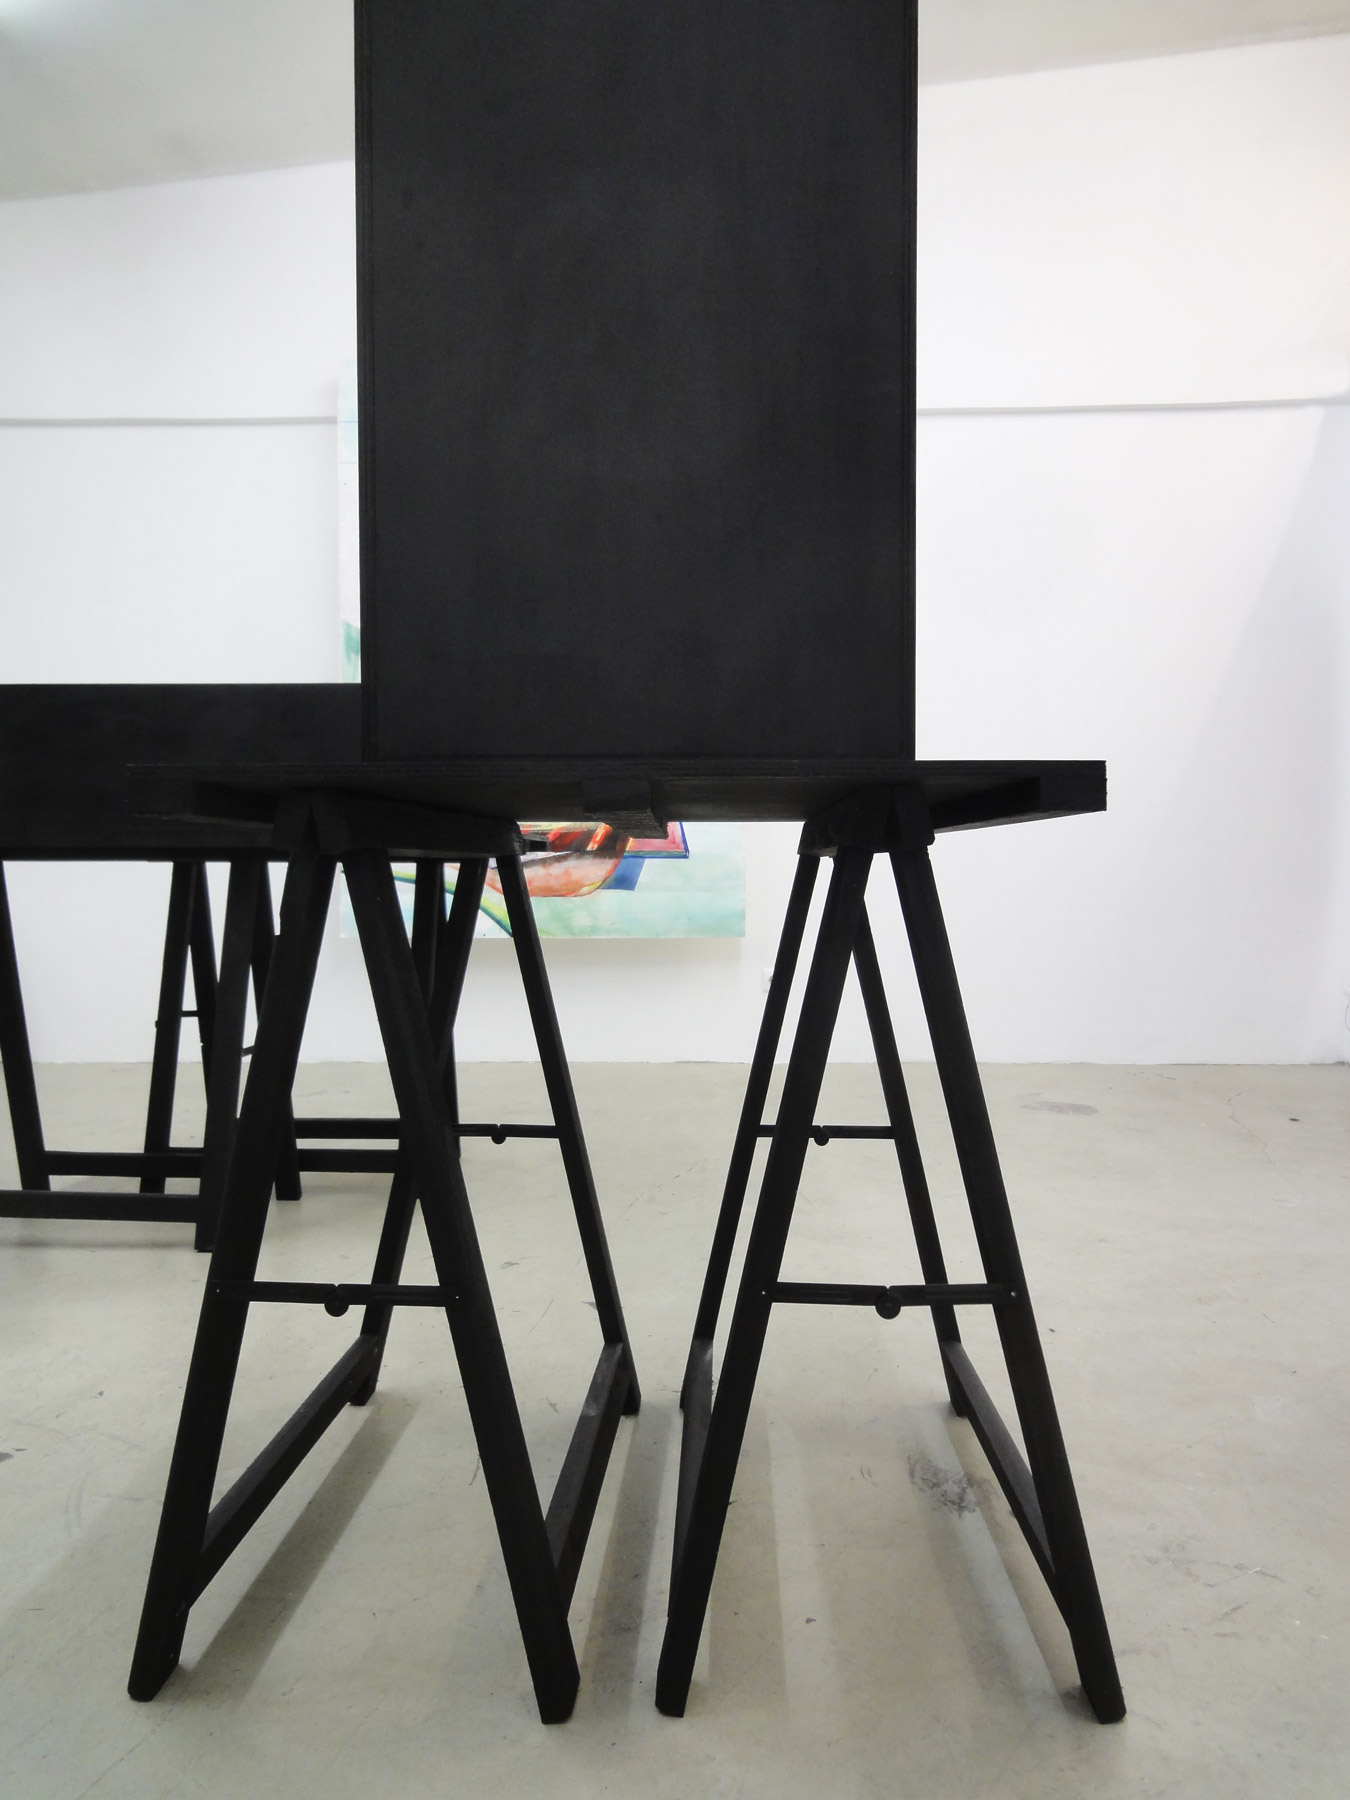 Nina Annabelle Märkl | Possible sculptures for a life somehow distracted | Installation with Jenny Forster (paintings) | 2015